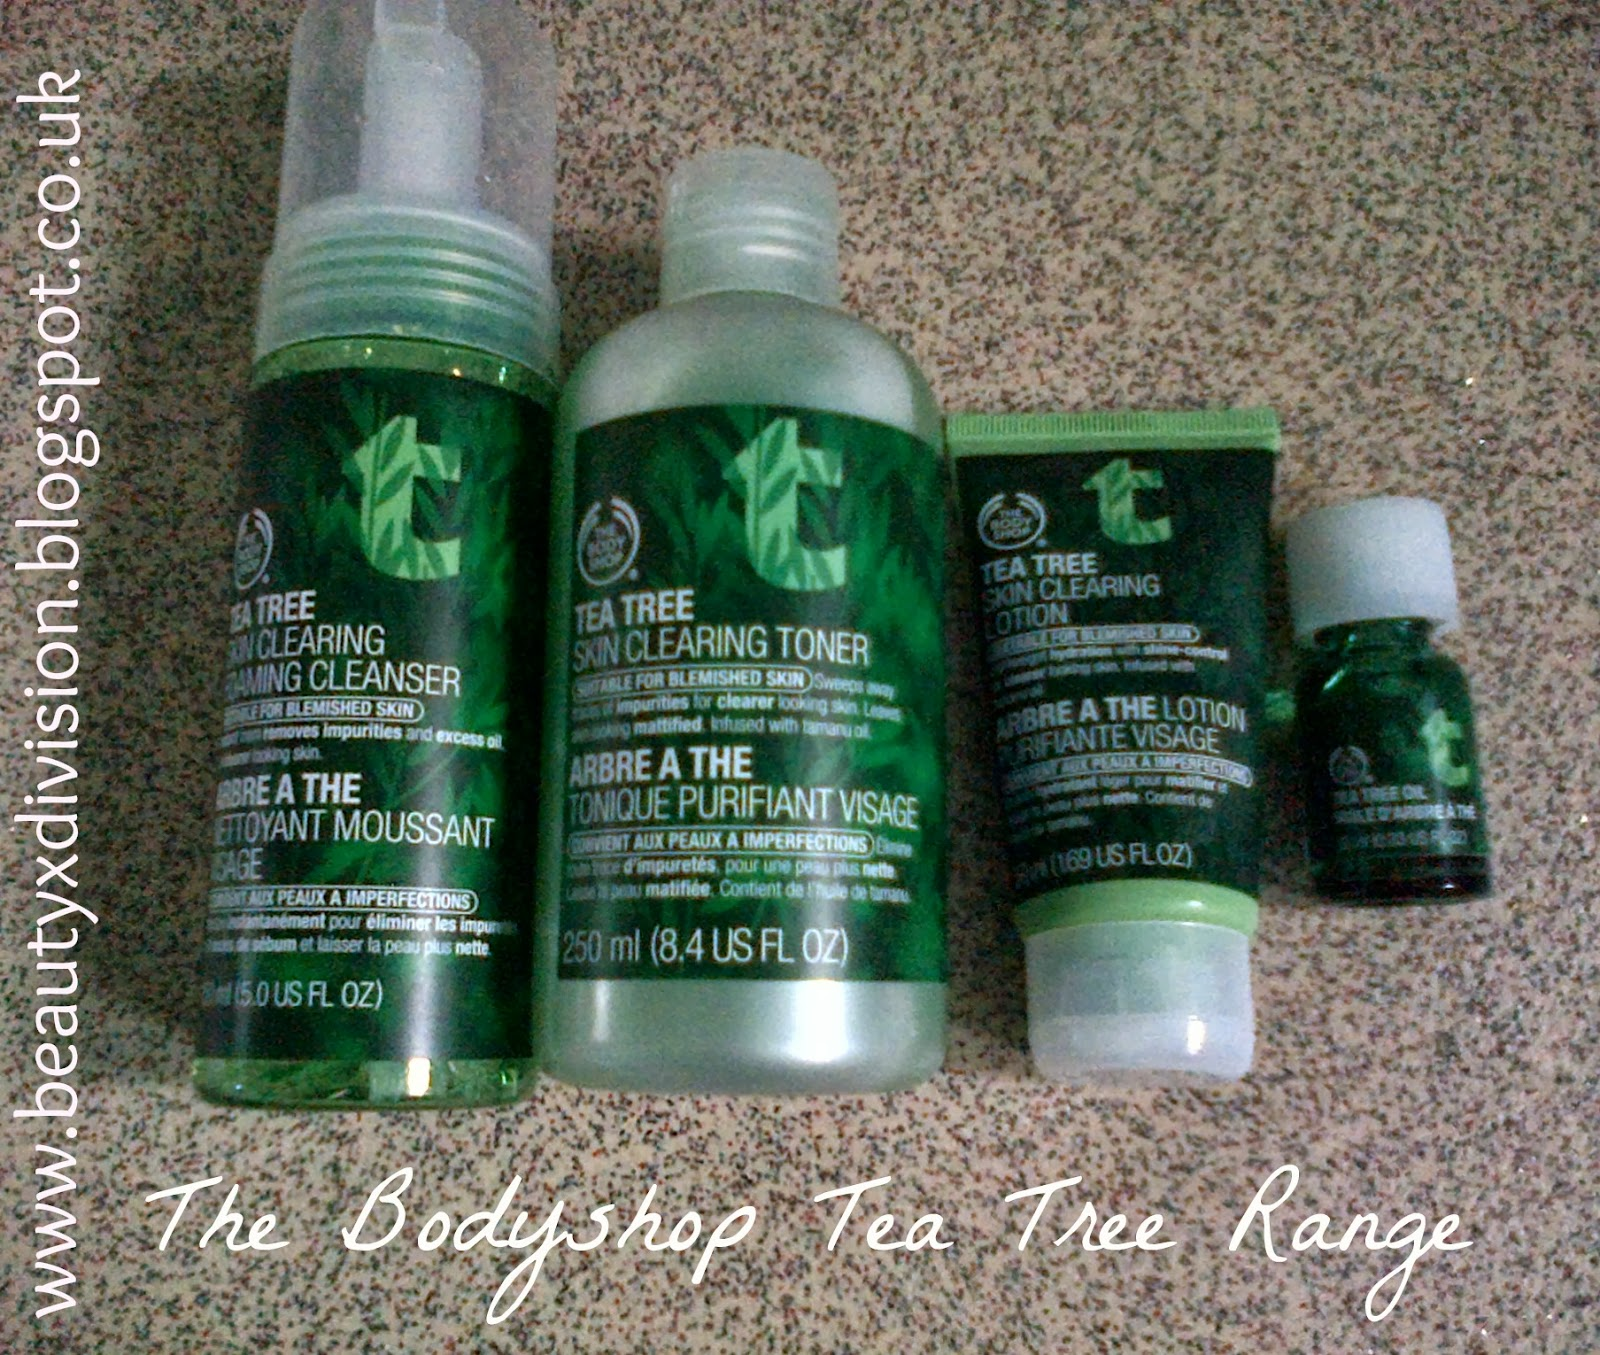 The Bodyshop Tea Tree Range